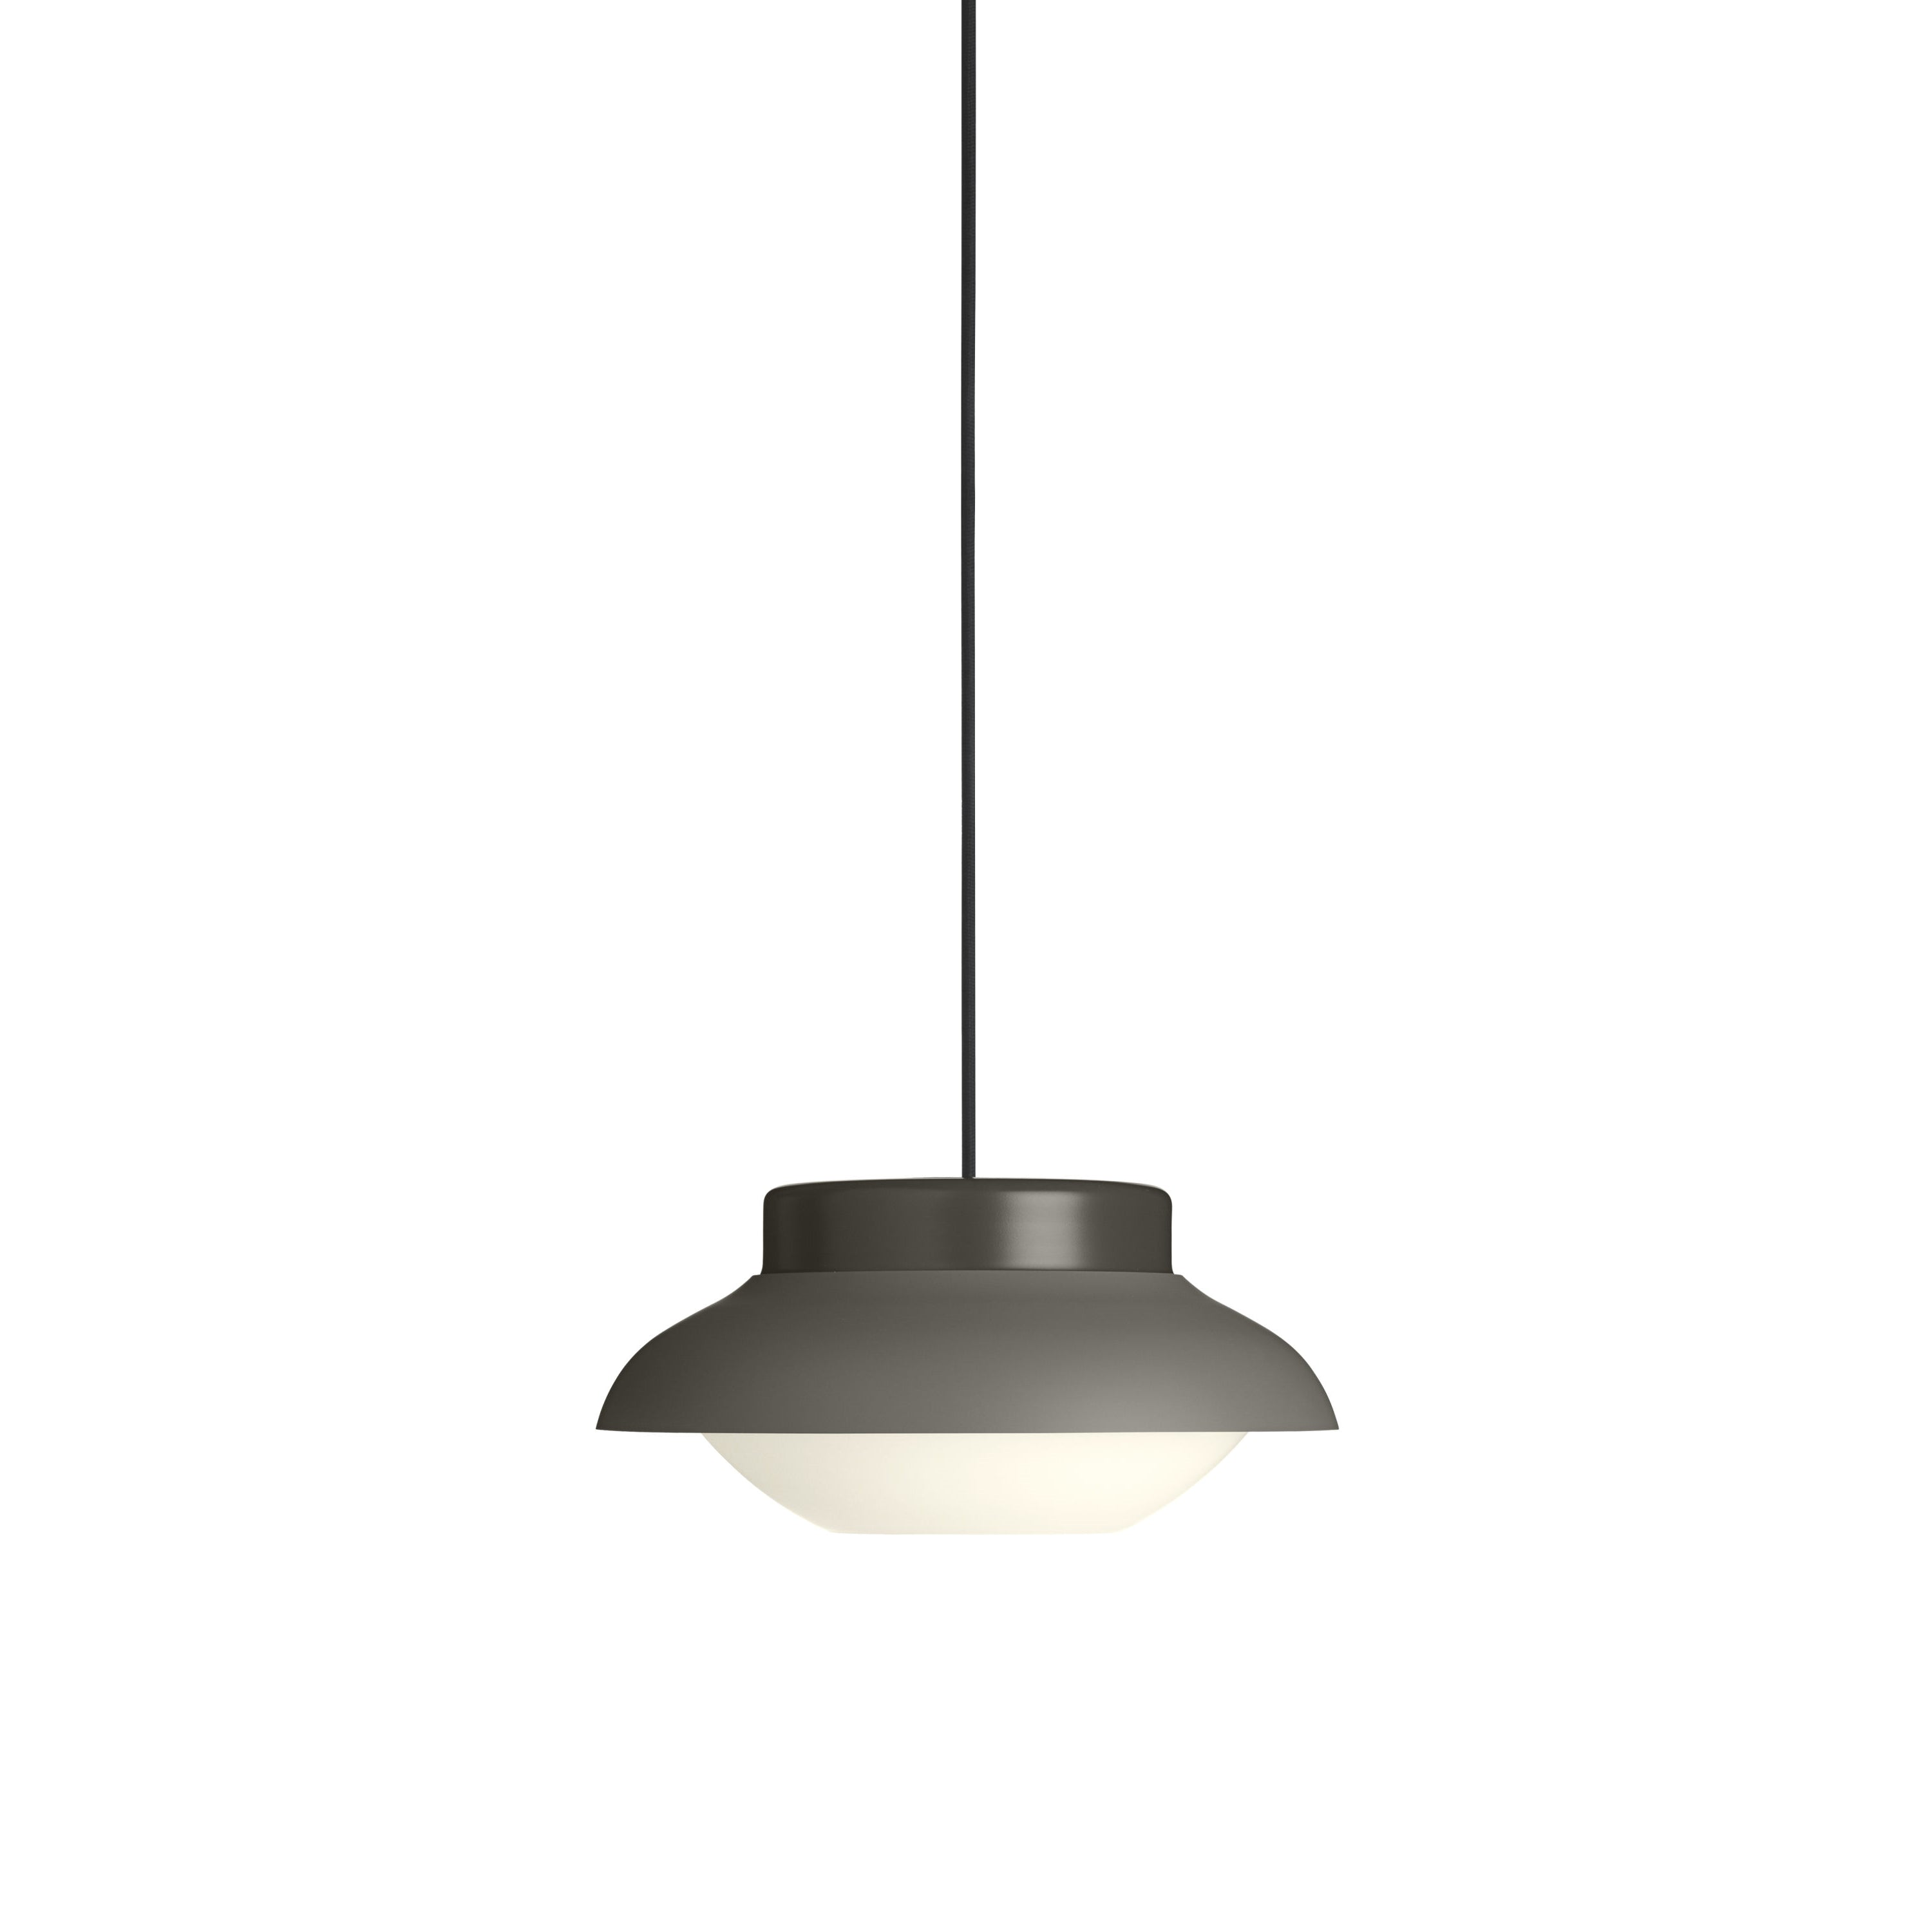 Collar Pendant Light: Small + Taupe